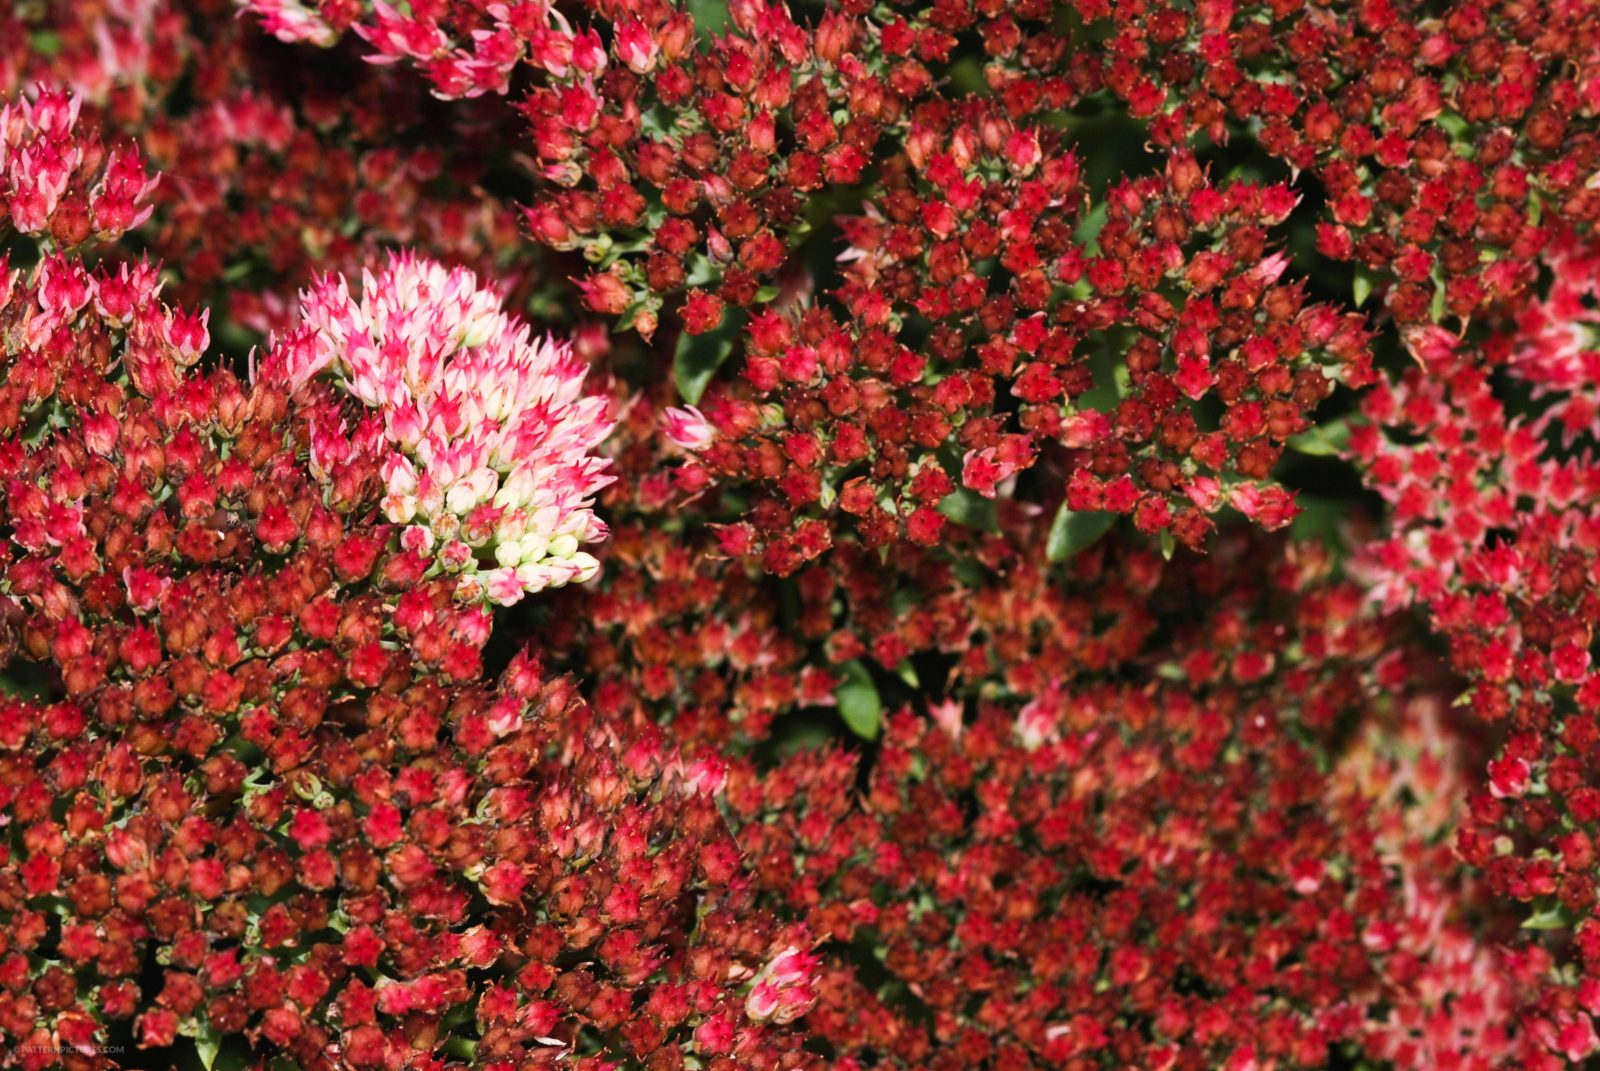 Red flowers stand out from the rest